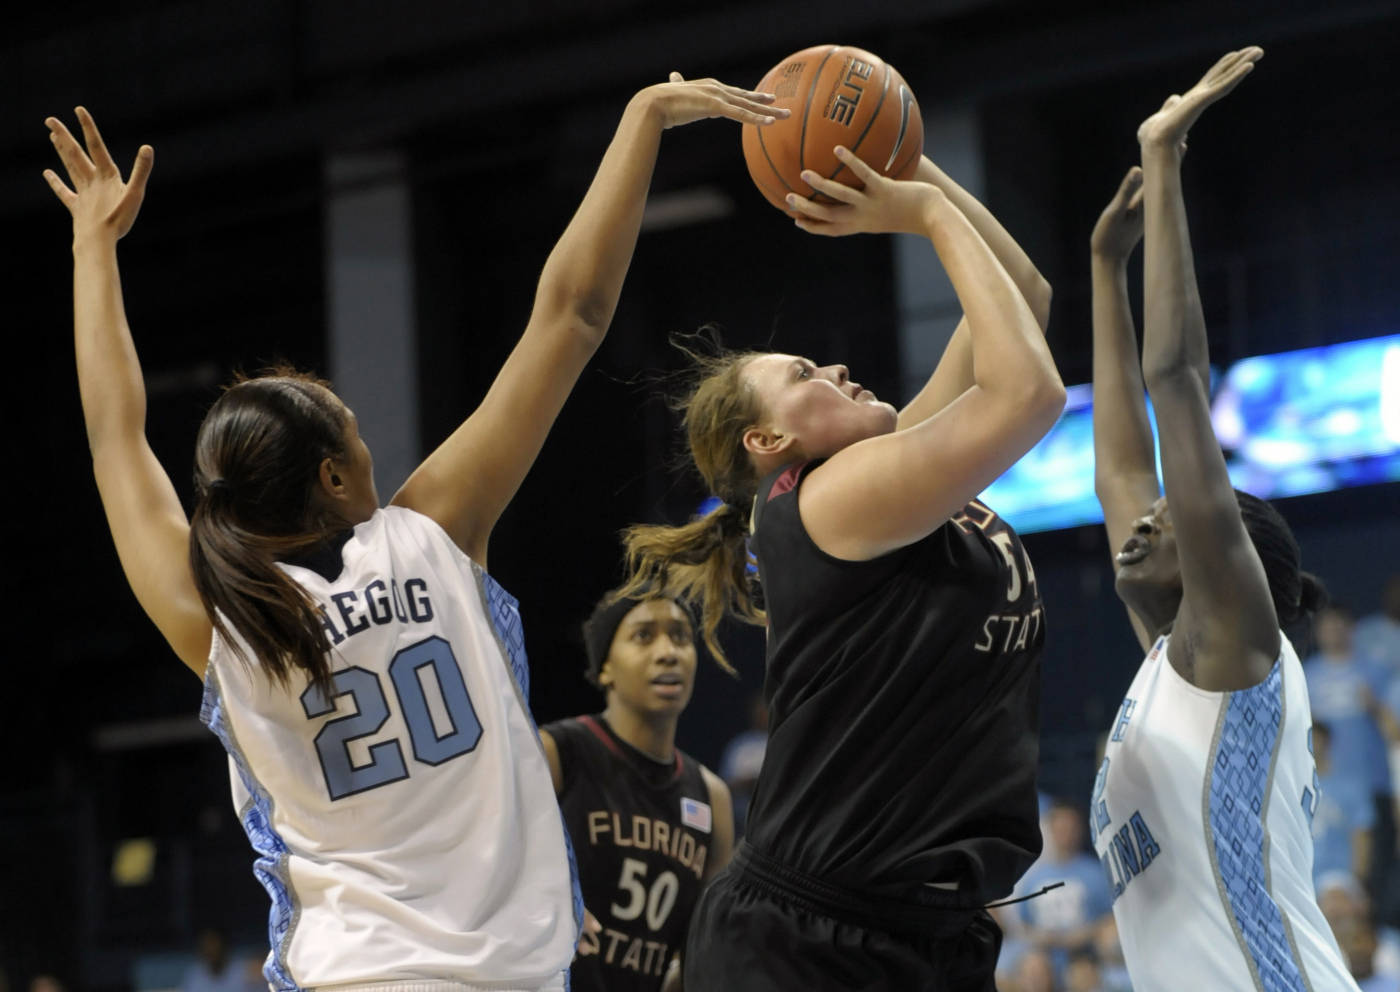 Florida State's Cierra Bravard (54) shoots over North Carolina's Chay Shegog (20) and Waltiea Rolle, right,  during the second half an NCAA college basketball game in Durham, N.C., Monday, Feb. 1, 2010. Florida State won 83-73 over North Carolina. (AP Photo/Sara D. Davis)